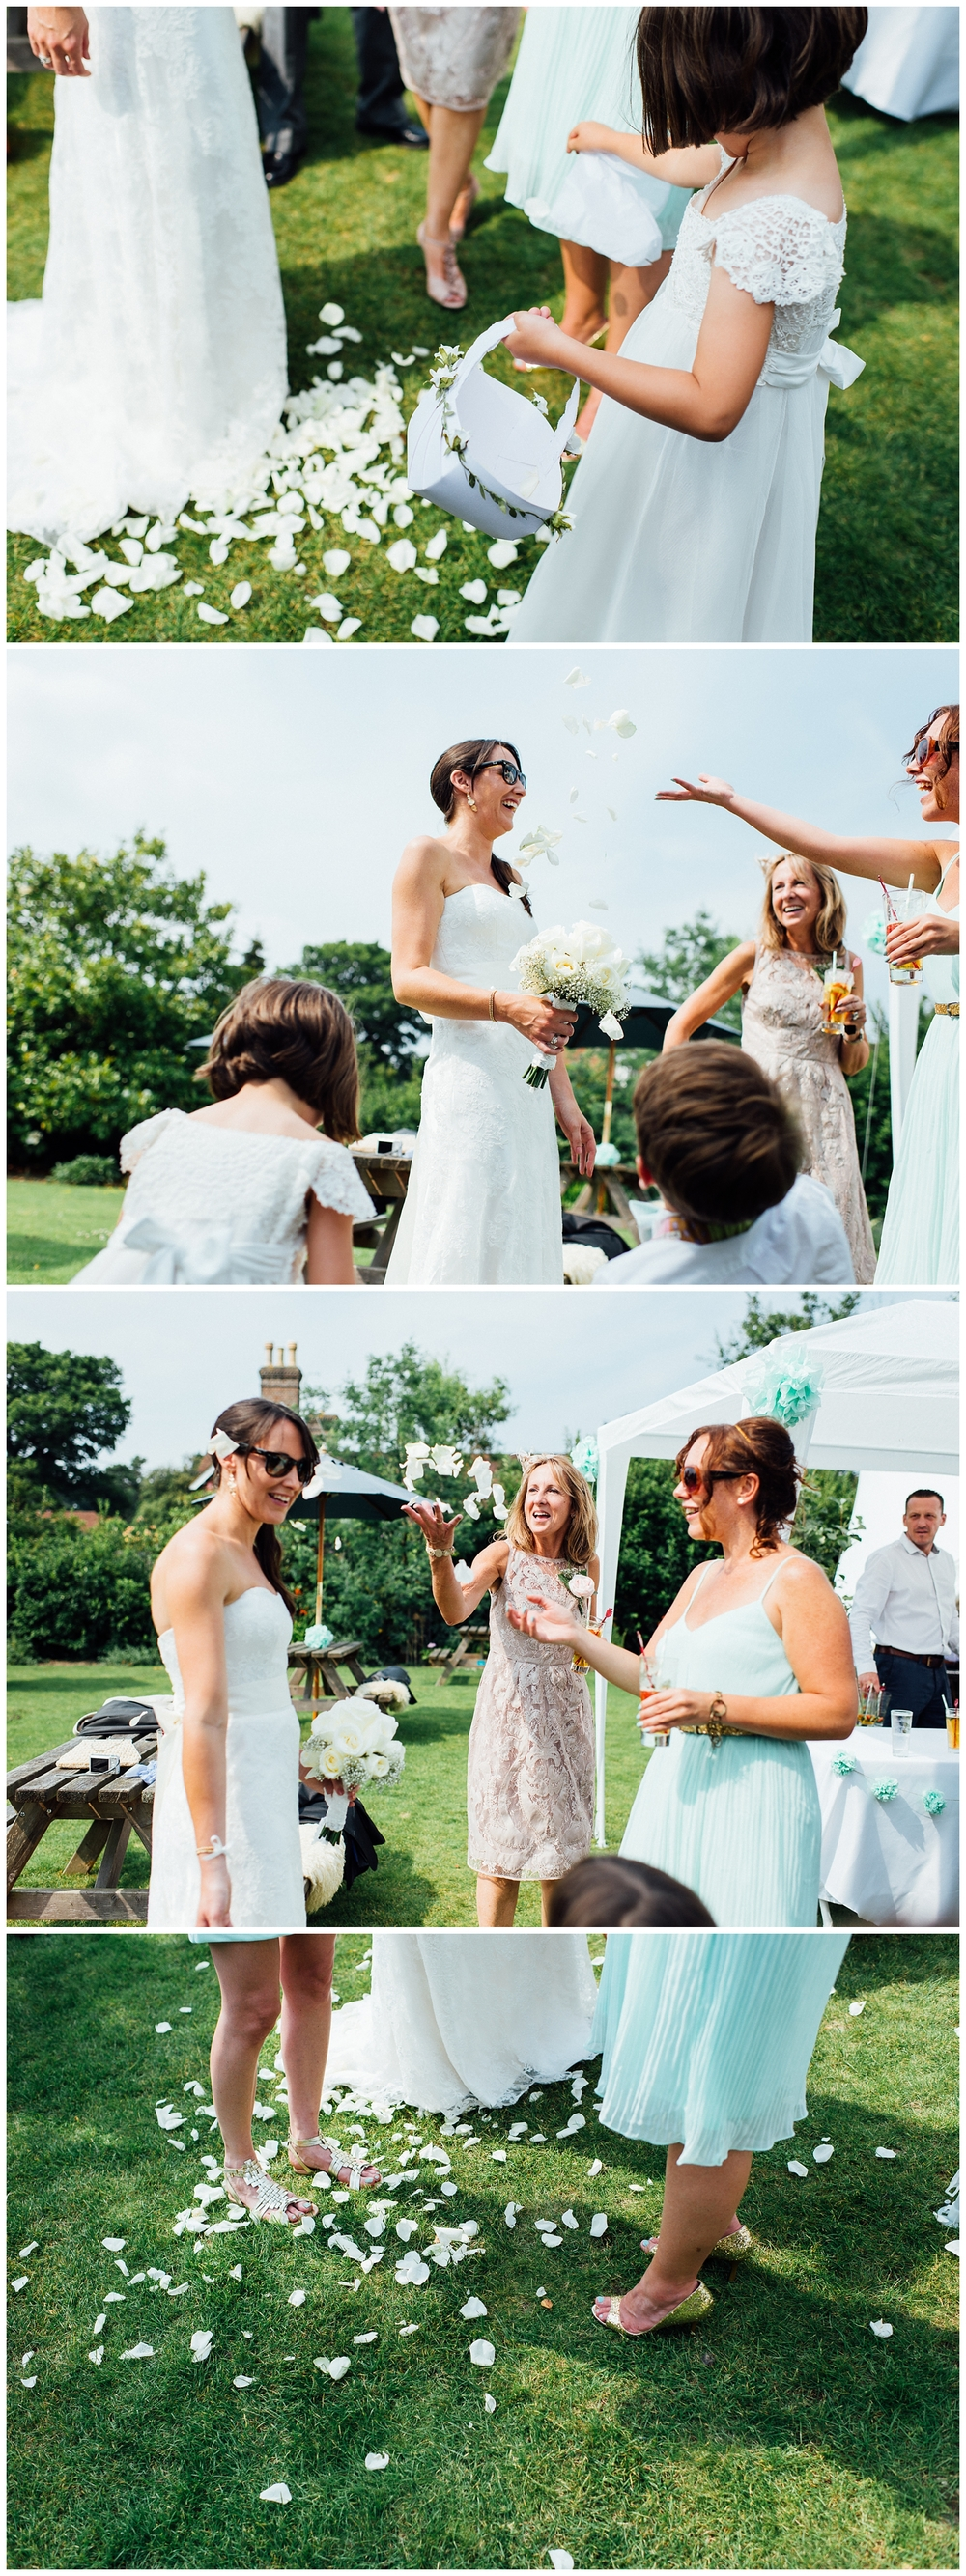 Nikki_Cooper_Photography_Lucy&Scott_Wedding_Photos_The_Crab_Tree_Pub_Horsham_1093.jpg